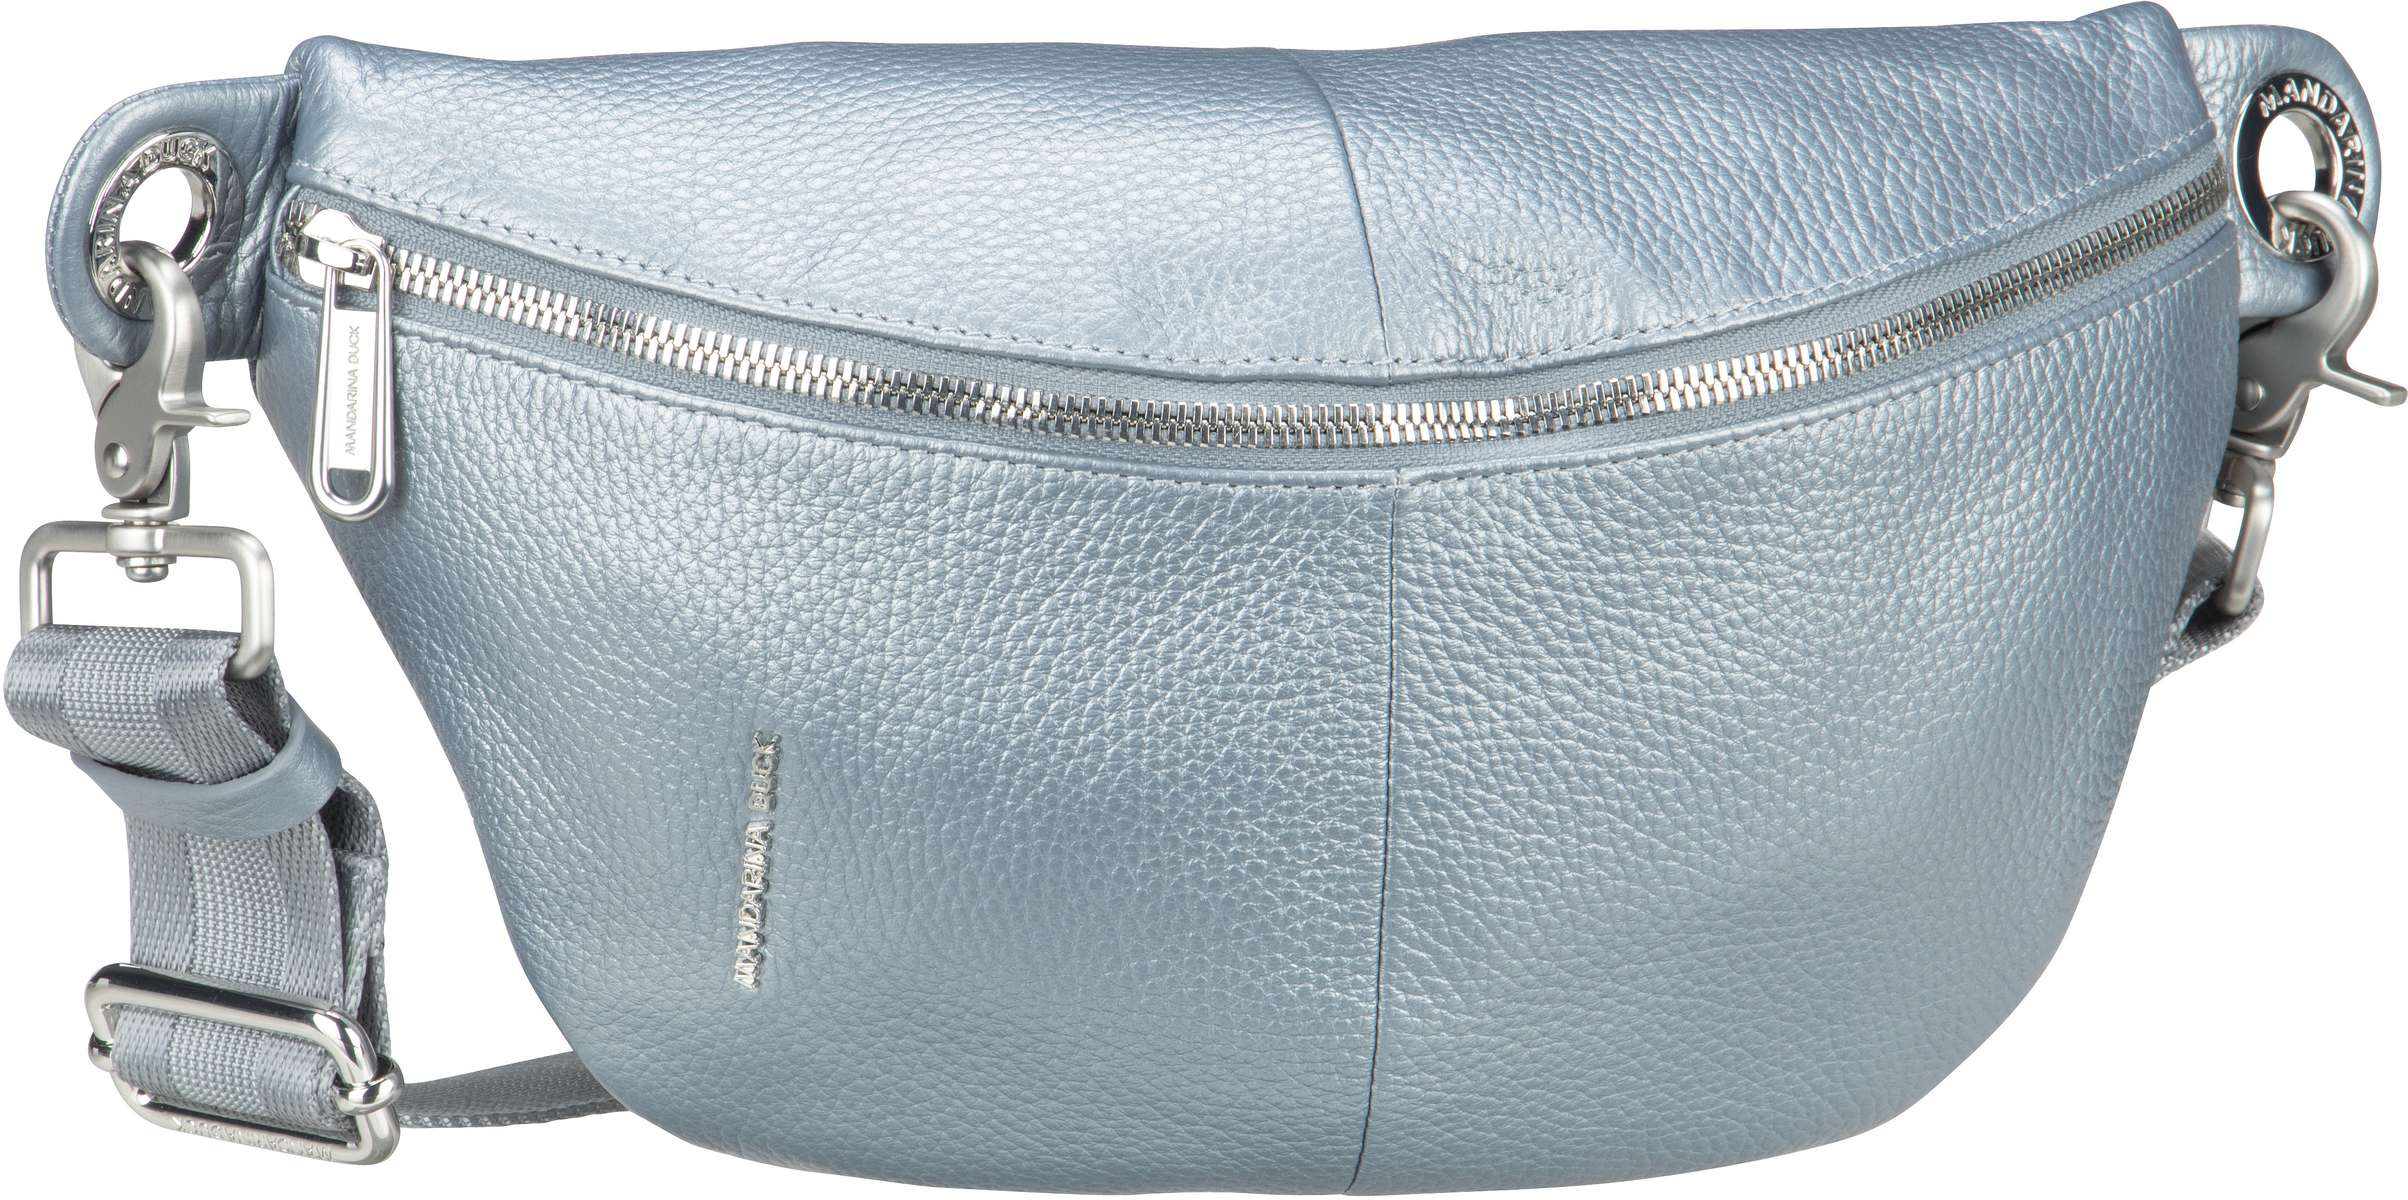 mandarina duck -  Gürteltasche Mellow Leather Lux Bum Bag ZLT73 Titanio